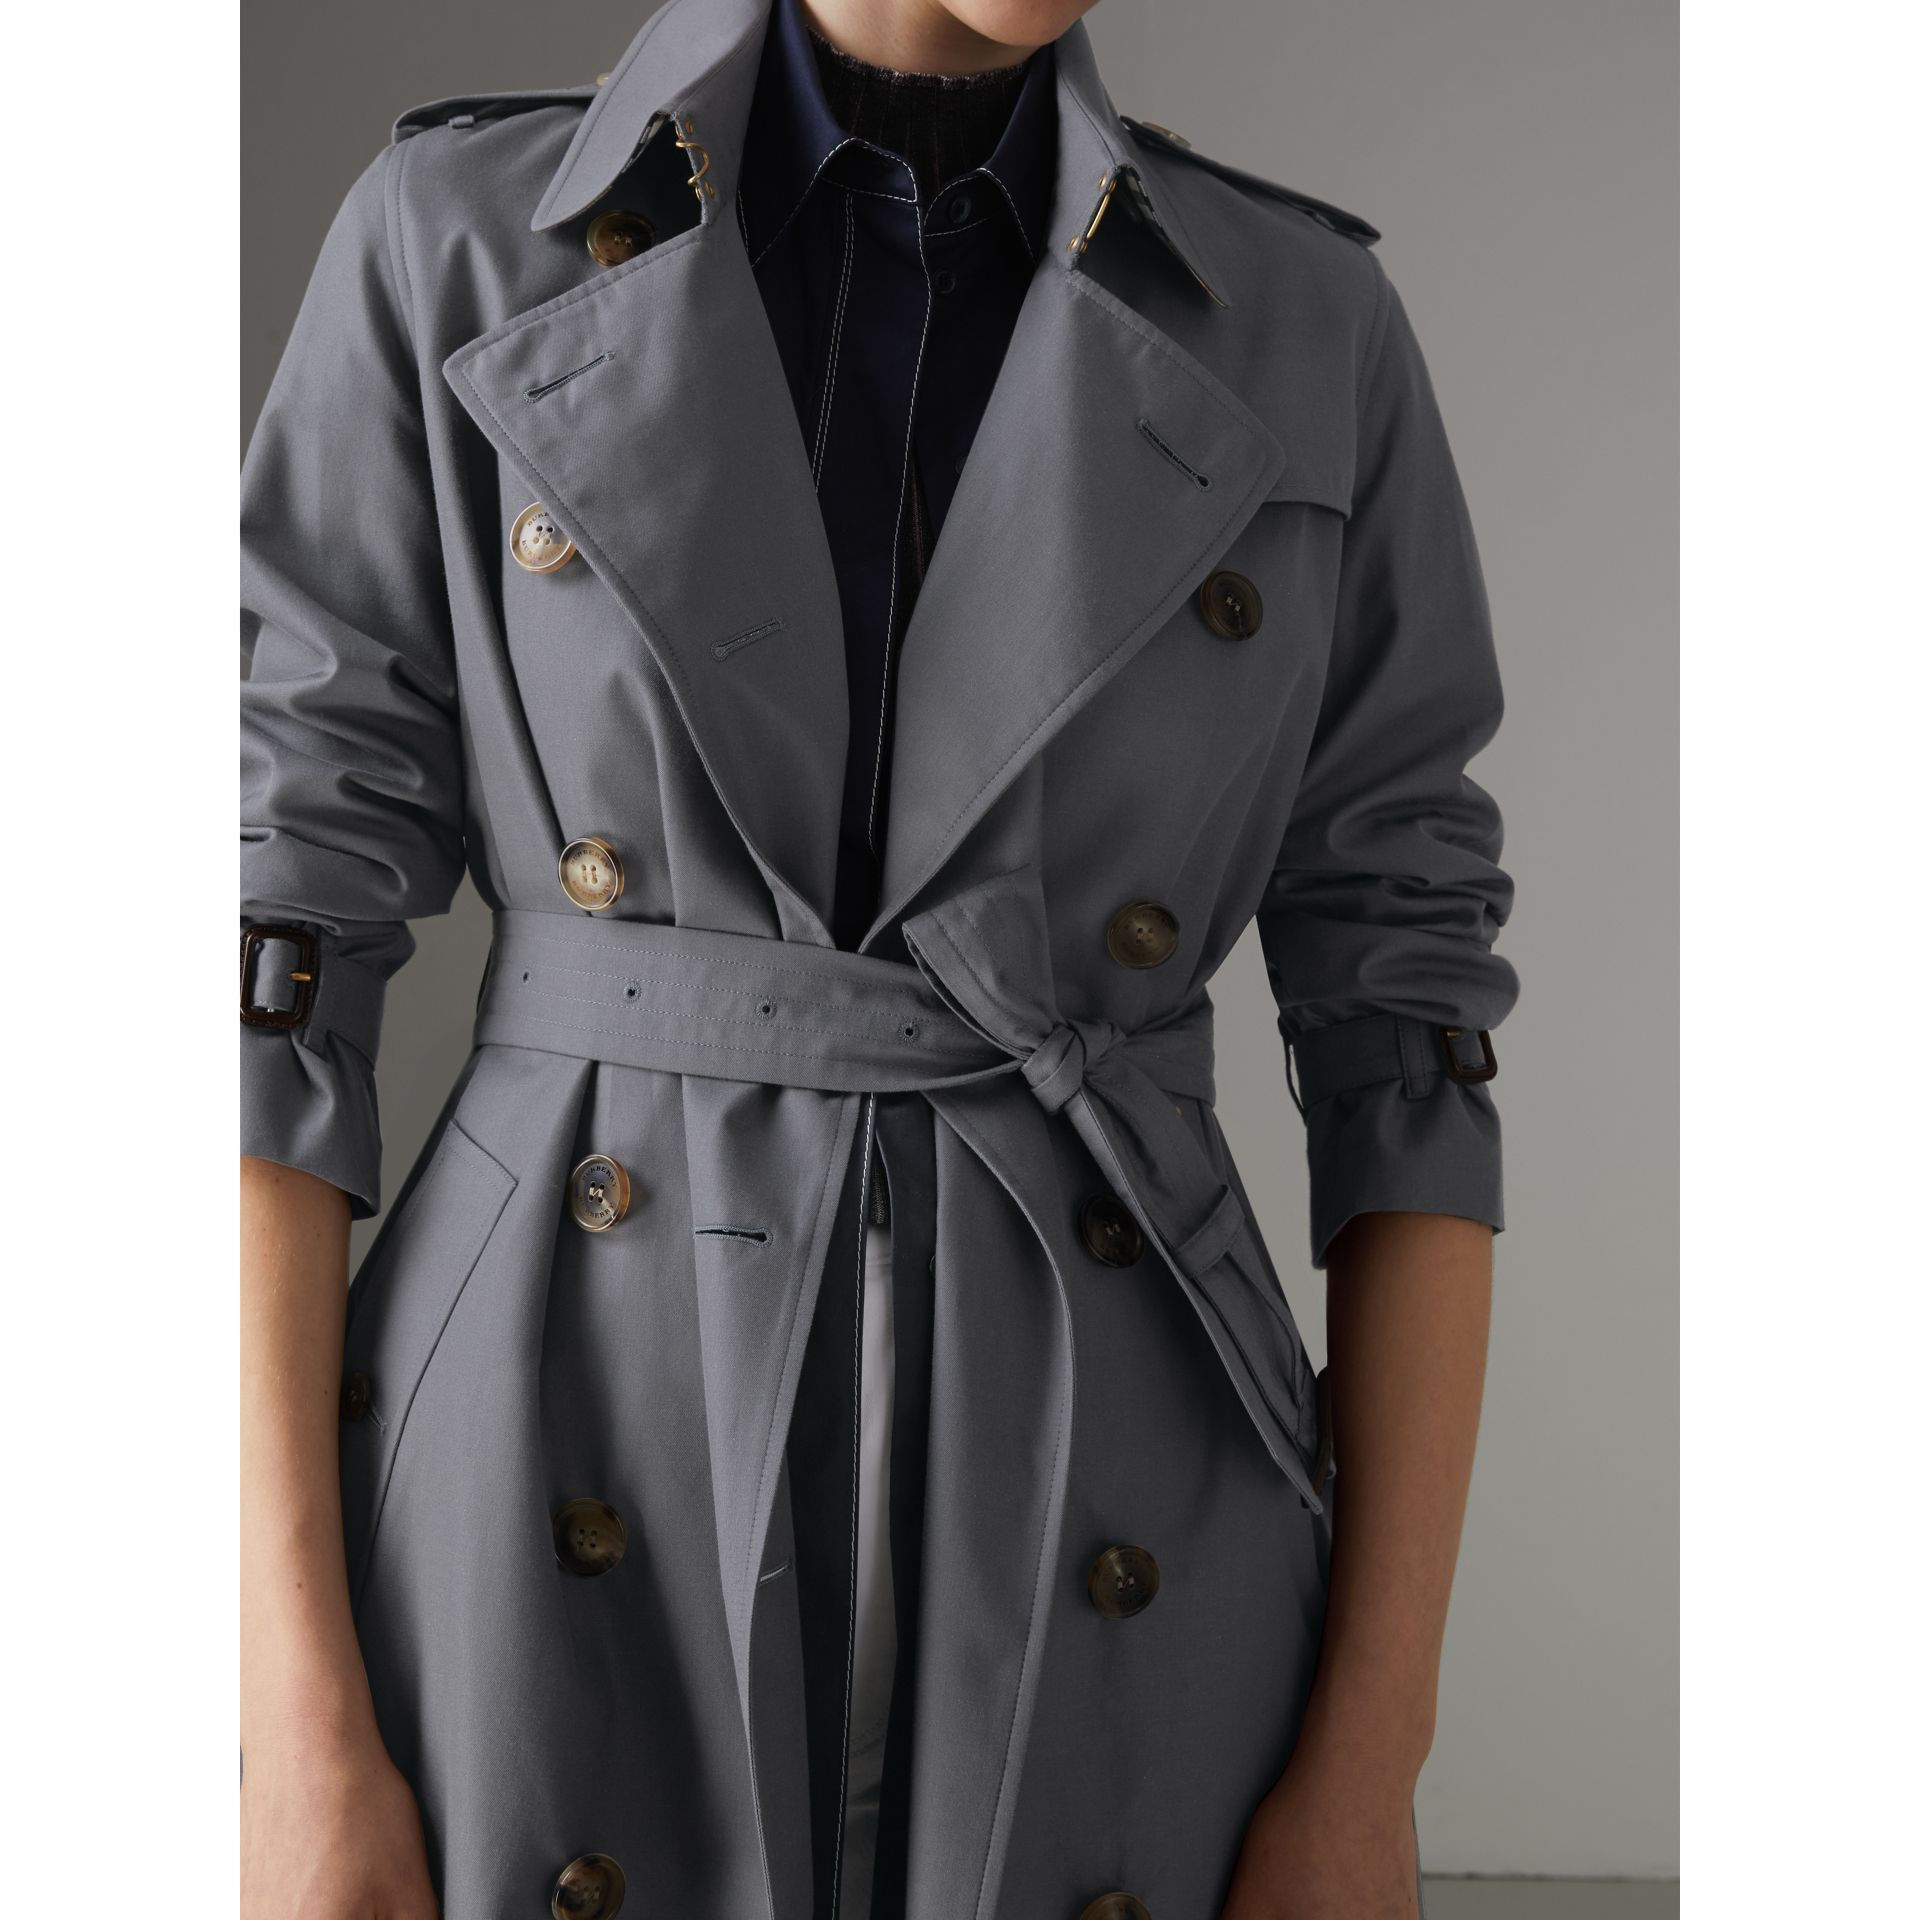 825887a1f8c1 Burberry The Long Kensington Heritage Trench Coat at £1450